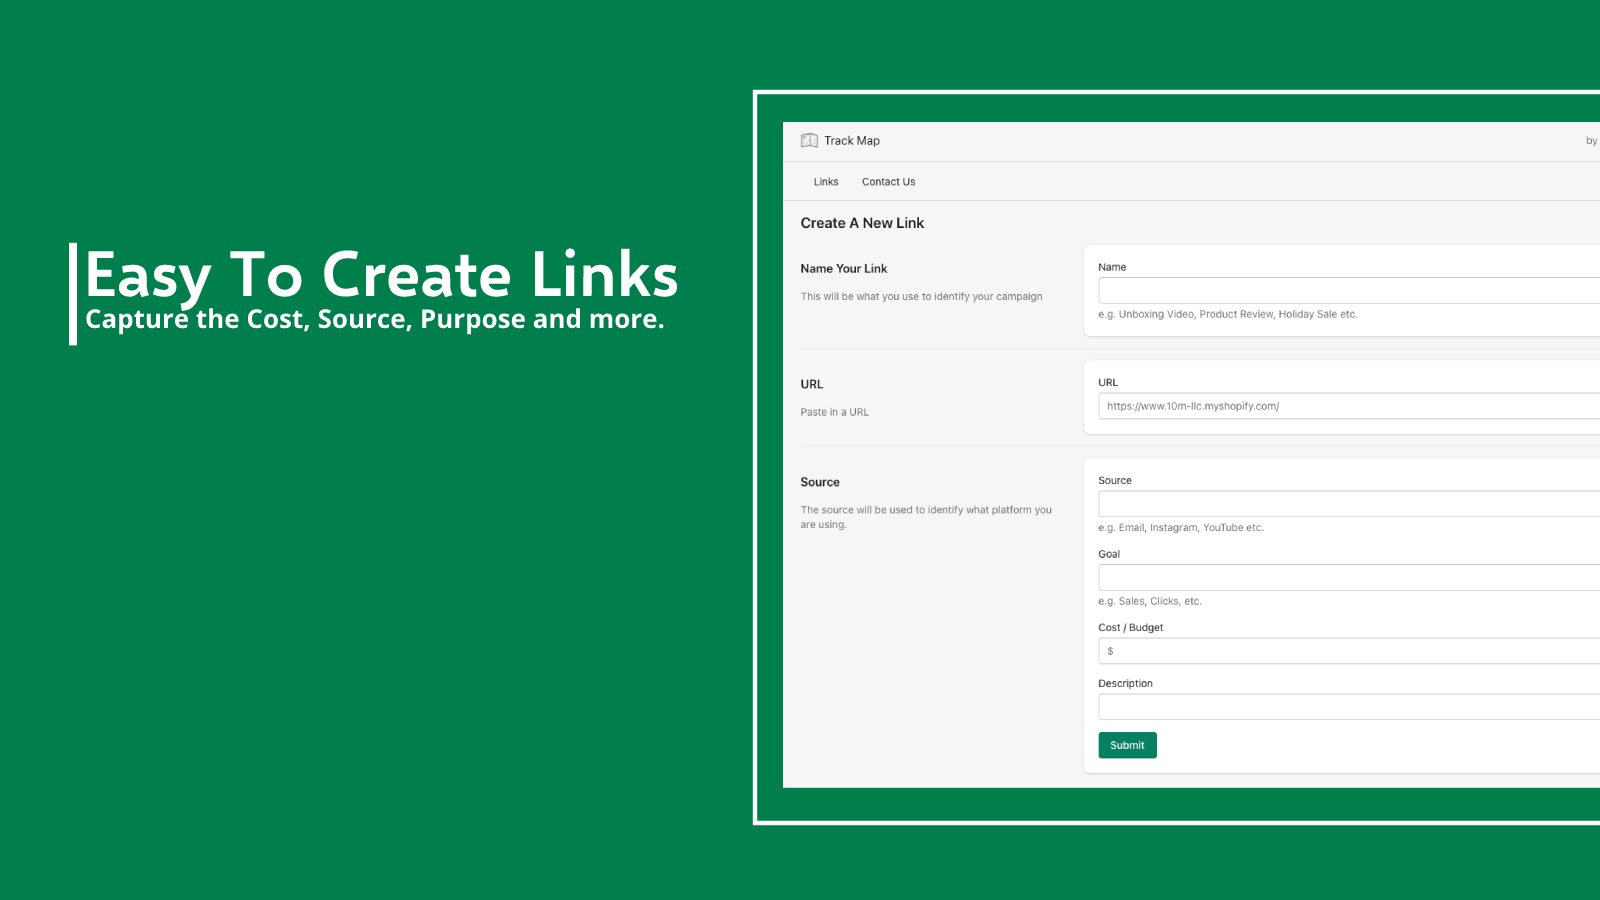 Create links in seconds